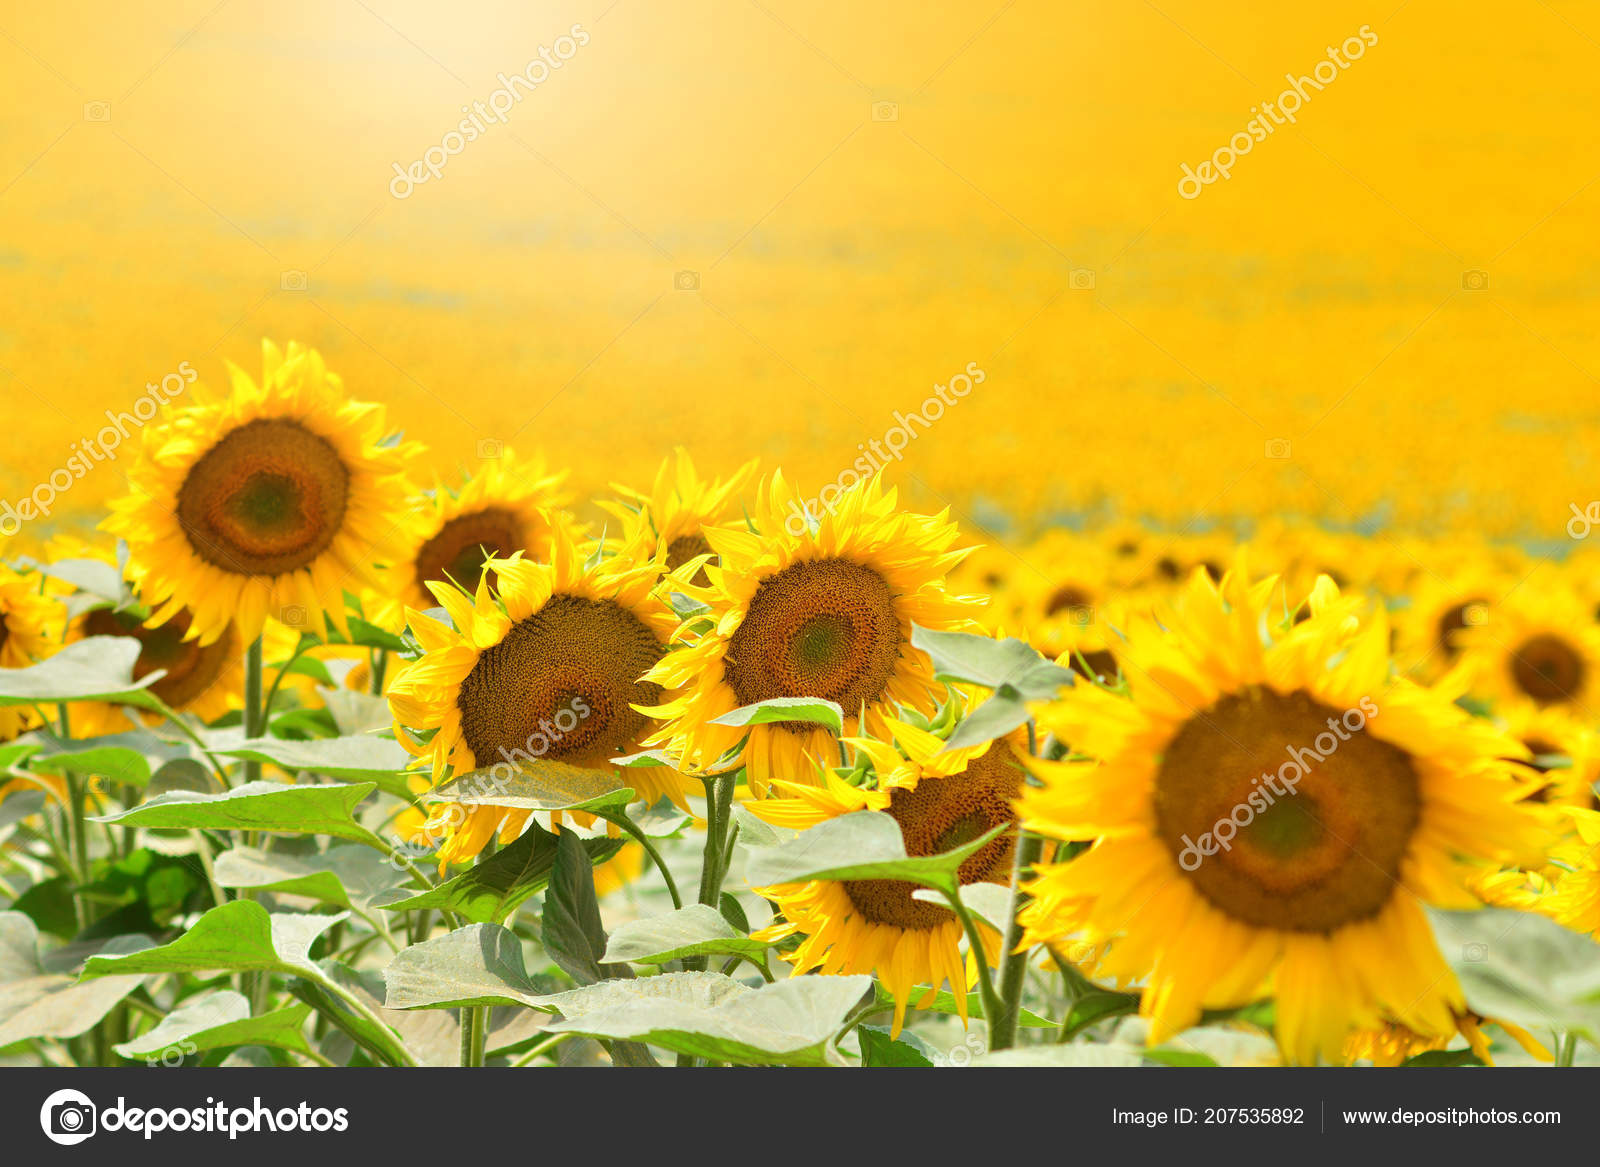 Yellow Sunflowers Background Wallpaper — Stock Photo